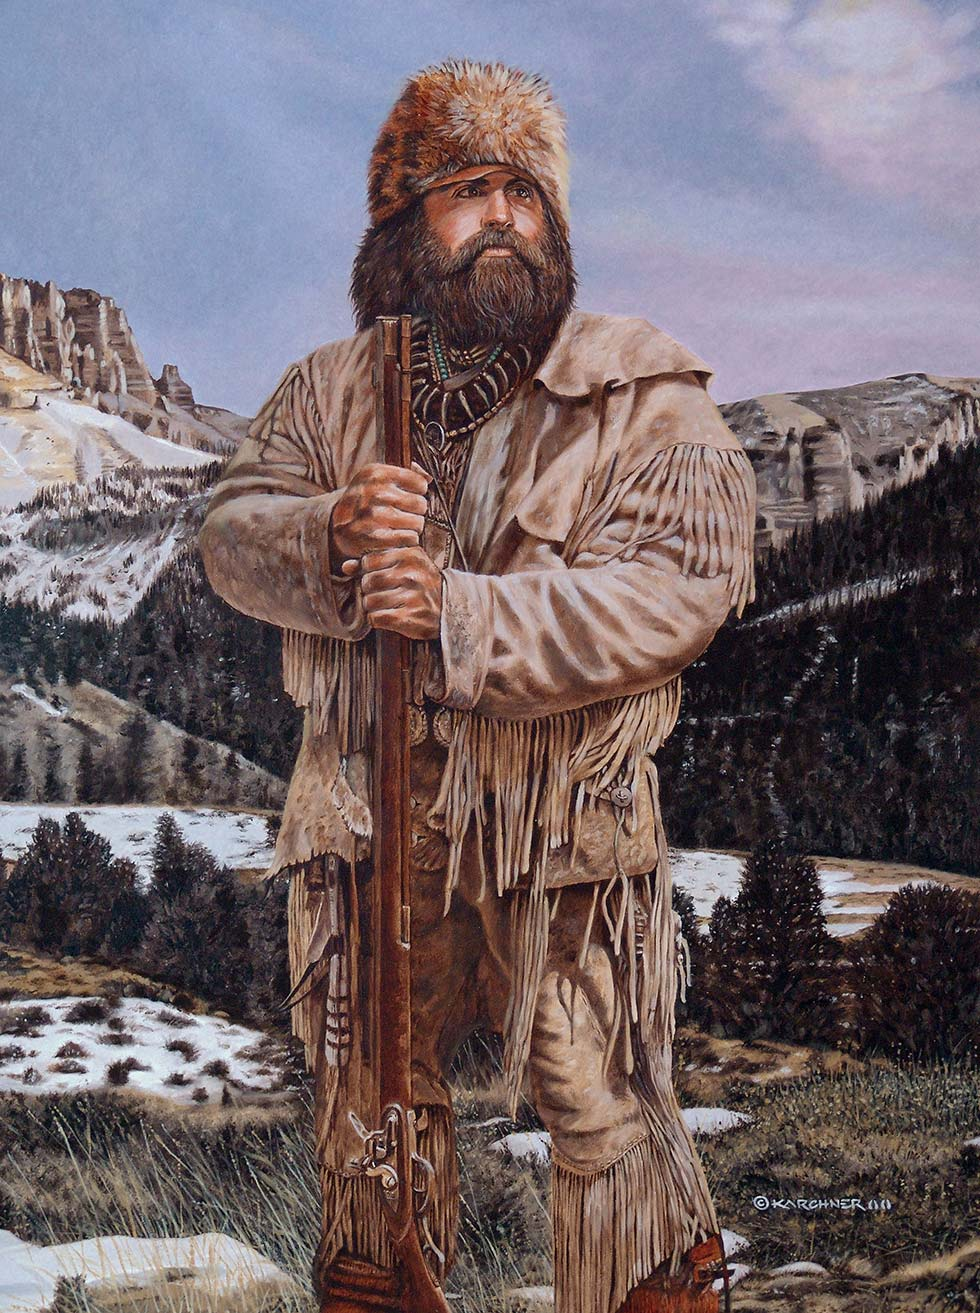 Work In Progress – A Wyoming Spirit, Brett Keisel